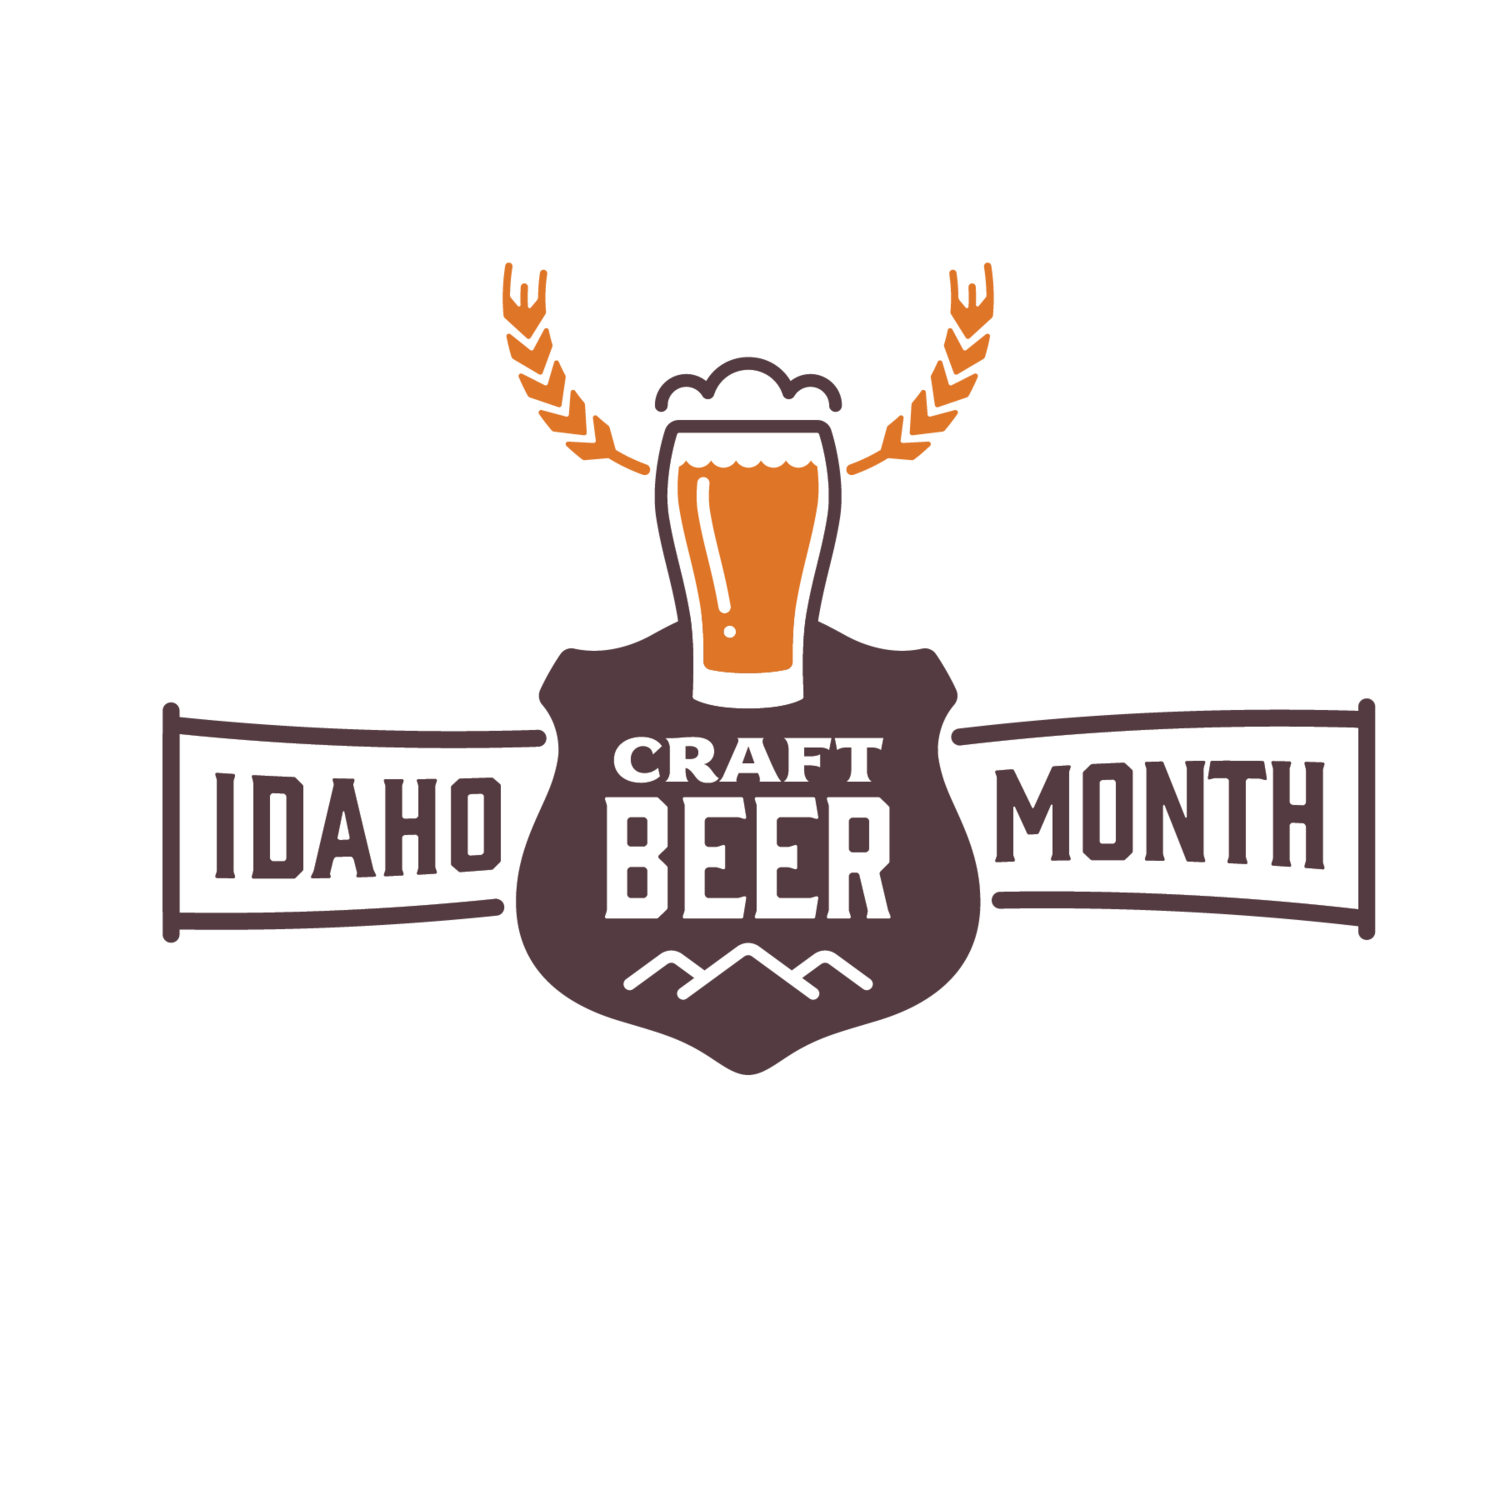 Idaho Craft Beer Month